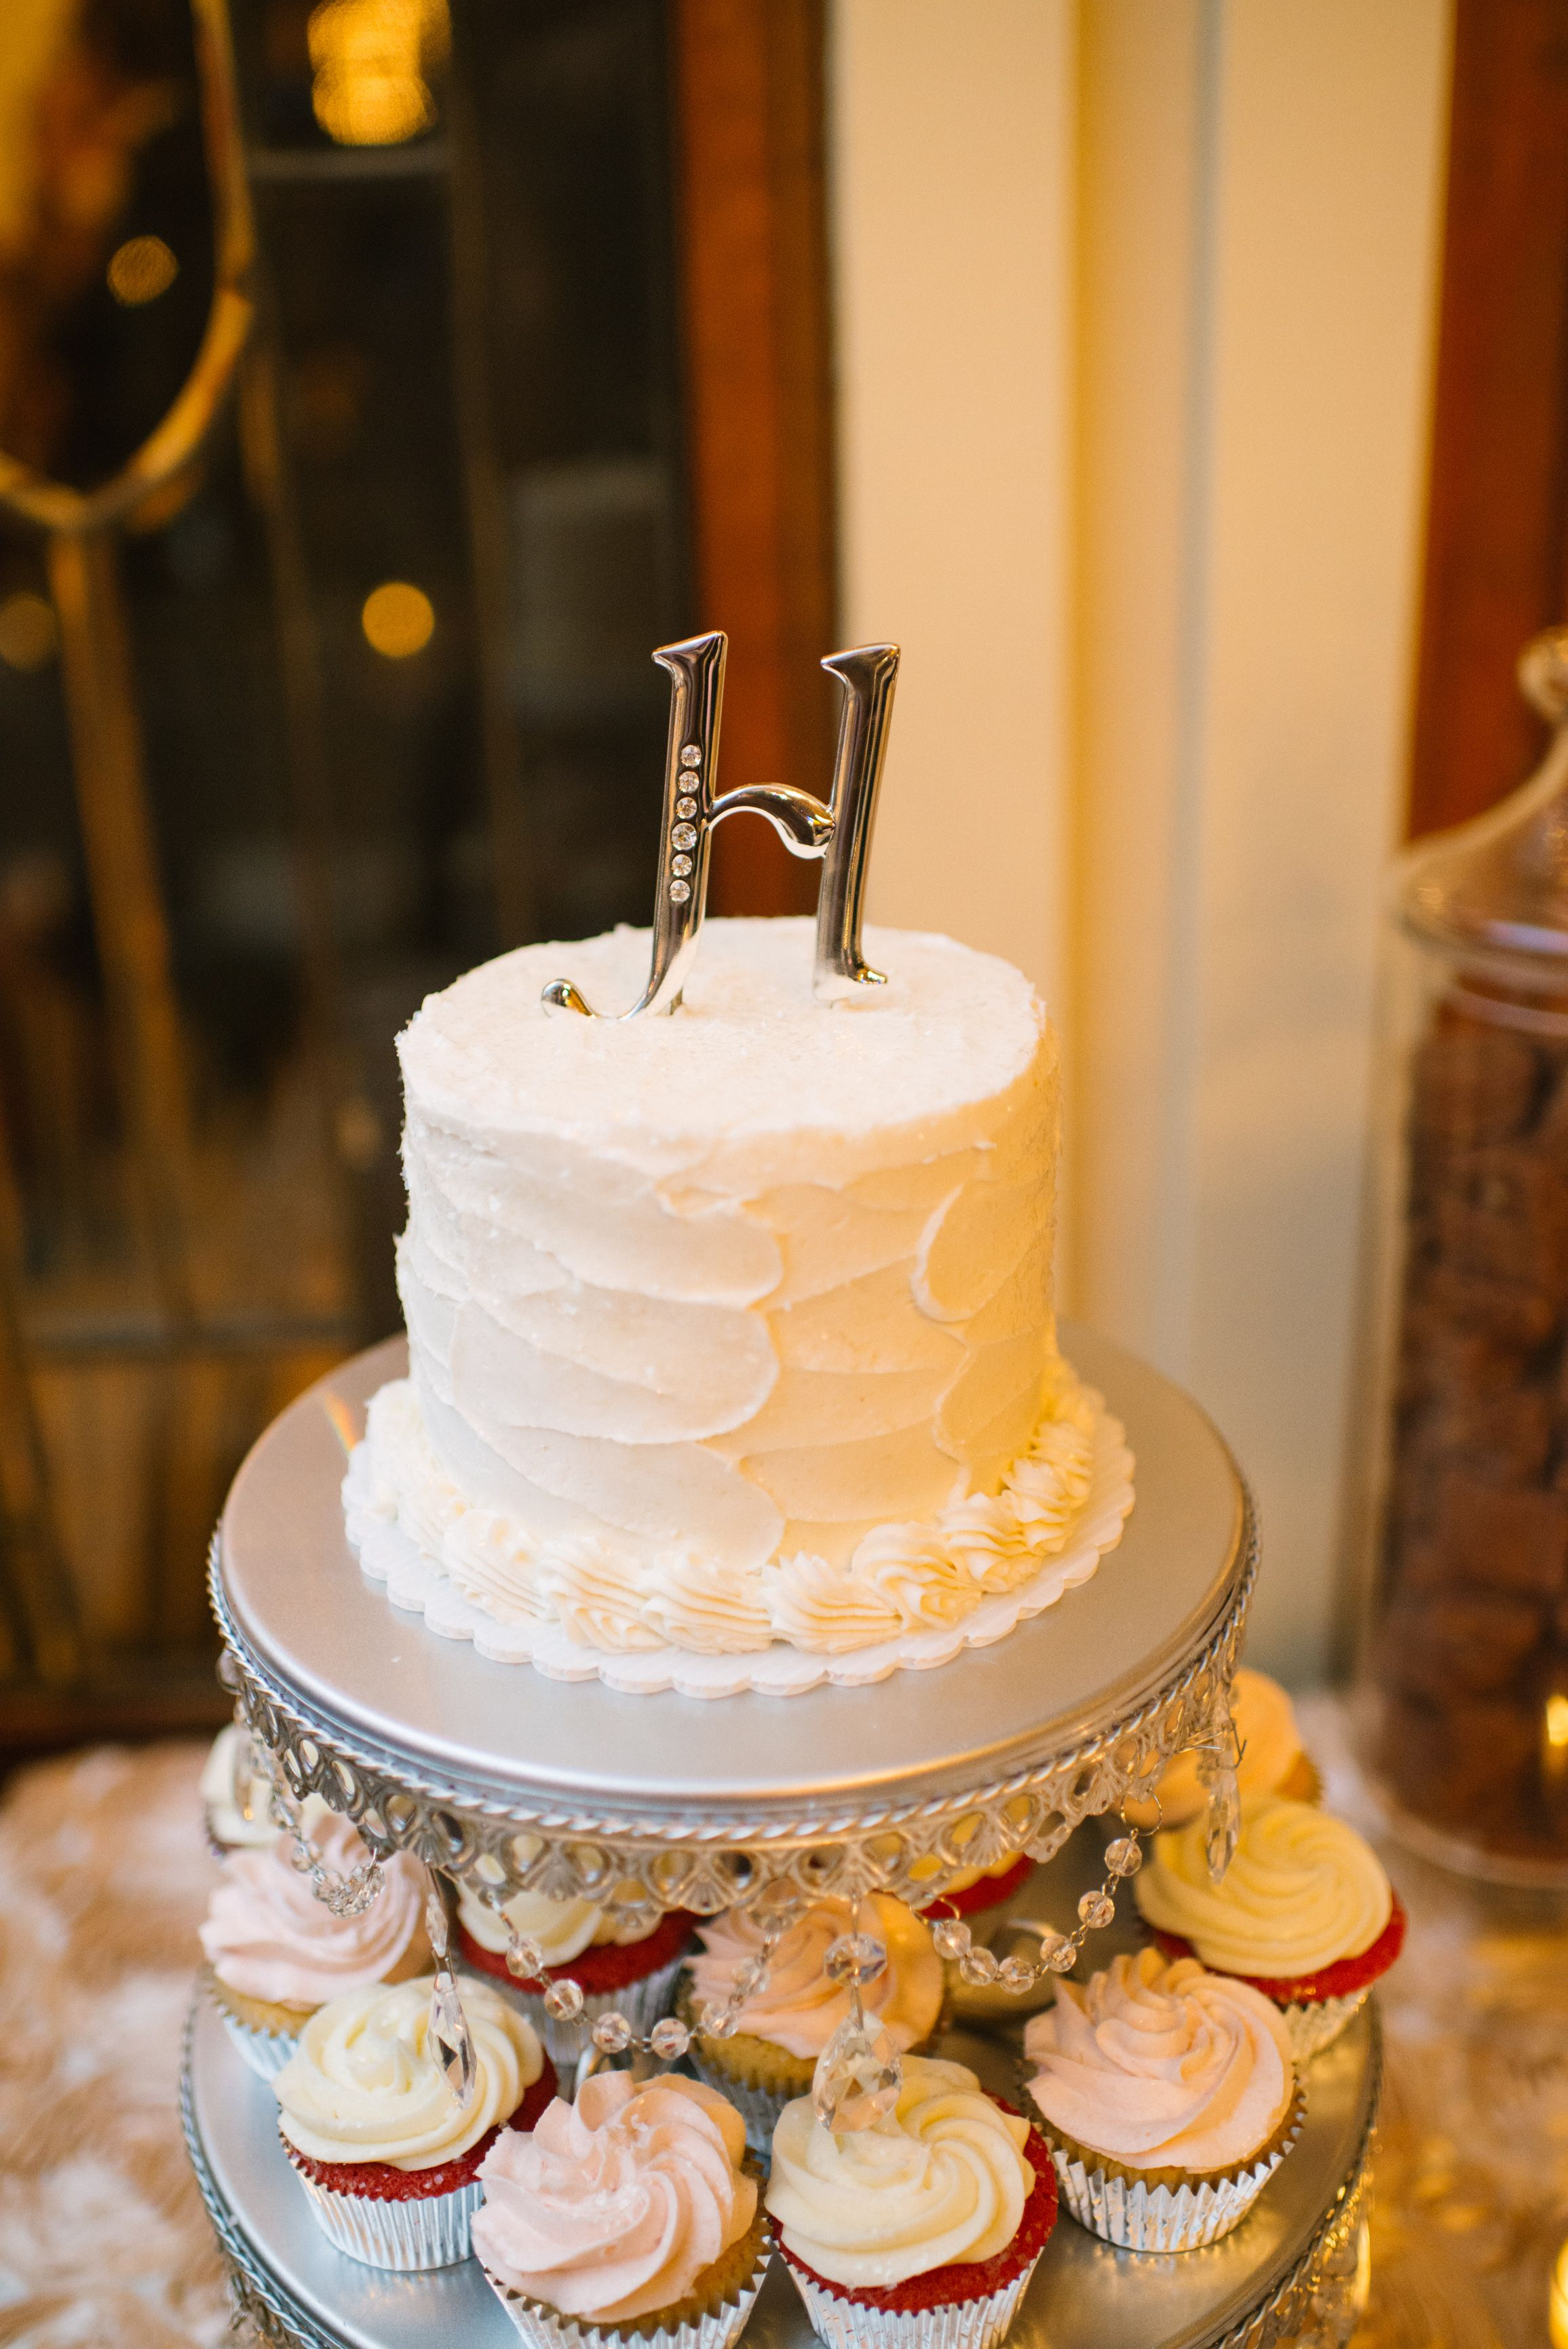 Love the #minicake accompanied with #cupcakes {Al Gawlik Photography}